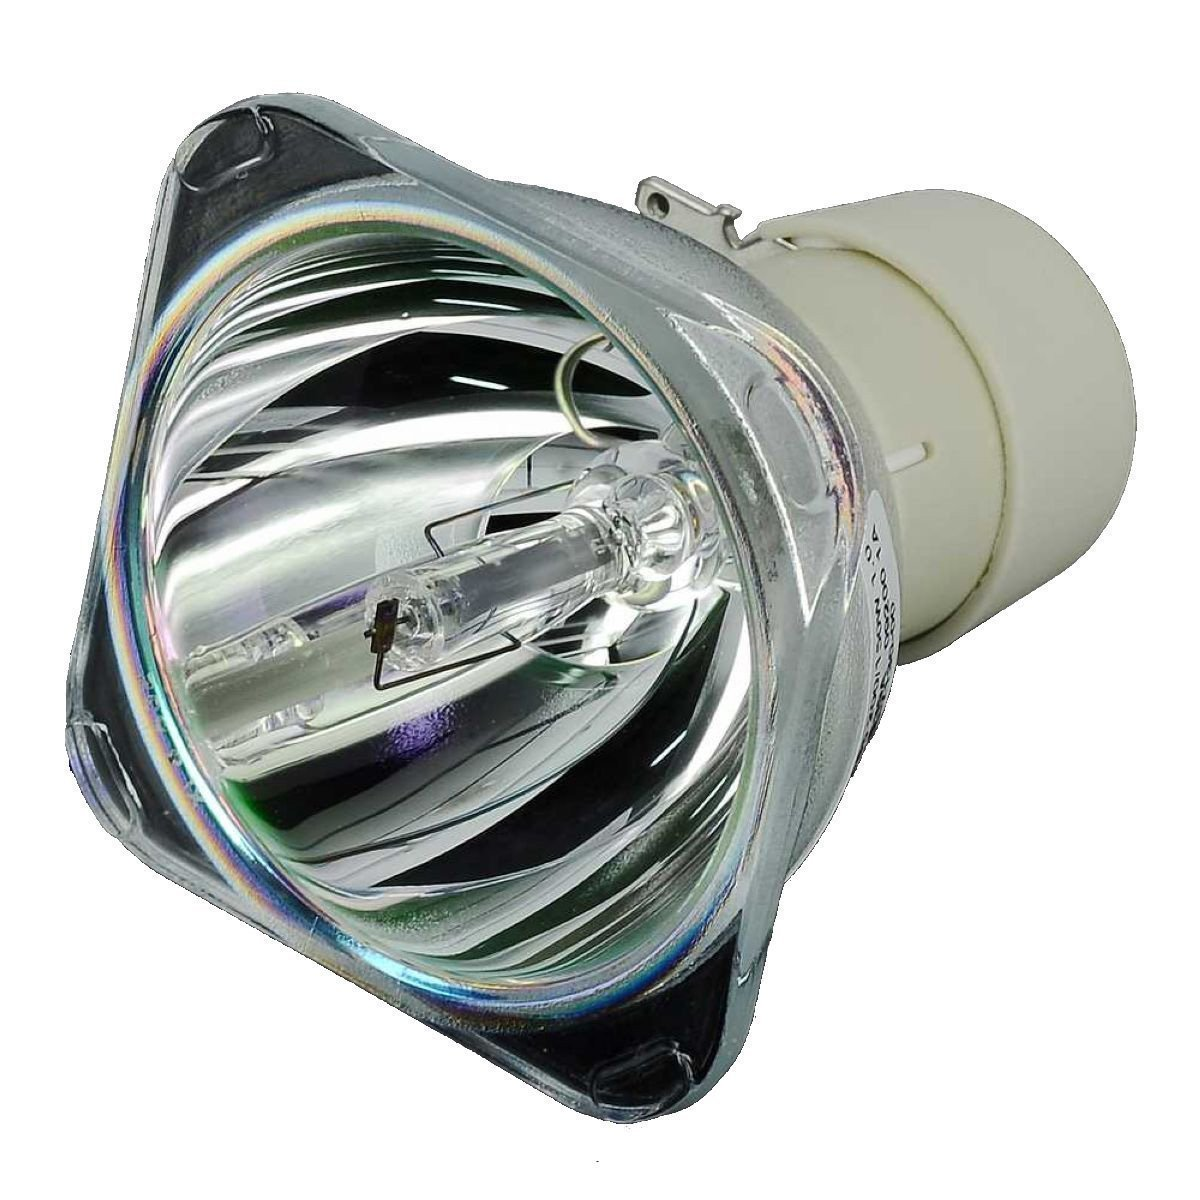 Compatible Bare Bulb 5J.J3S05.001 UHP200/150W for BENQ MX511 MS510 MW512 Projector Lamp Bulb without housing compatible bare projector lamp bulb 5j j2n05 011 for benq sp840